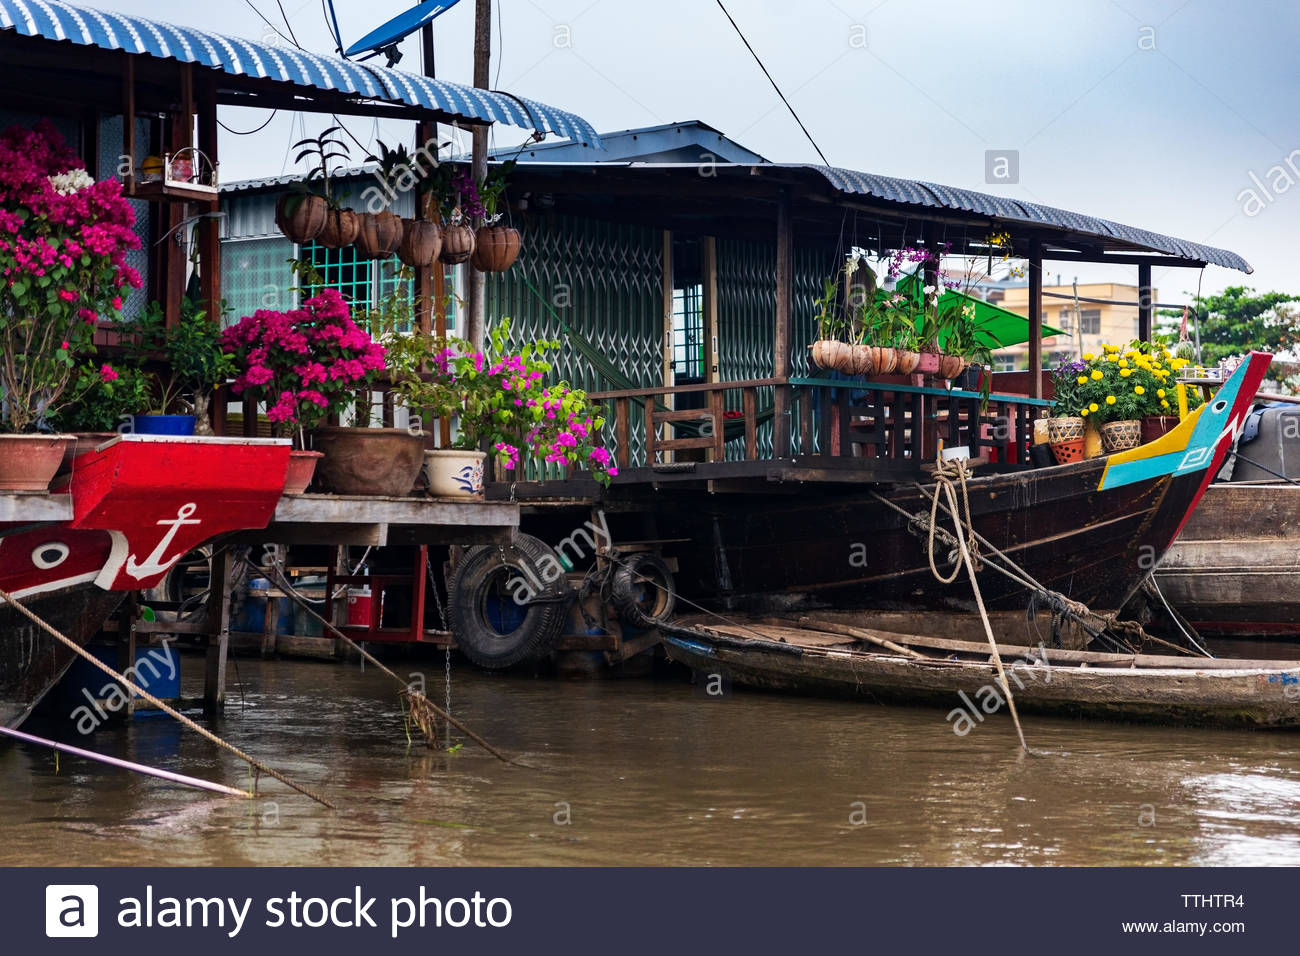 House boats moored together with paper flowers, orchids and yellow flowers for Tet New Year Celebration, Mekong Delta near Can Tho, Vietnam Stock Photo